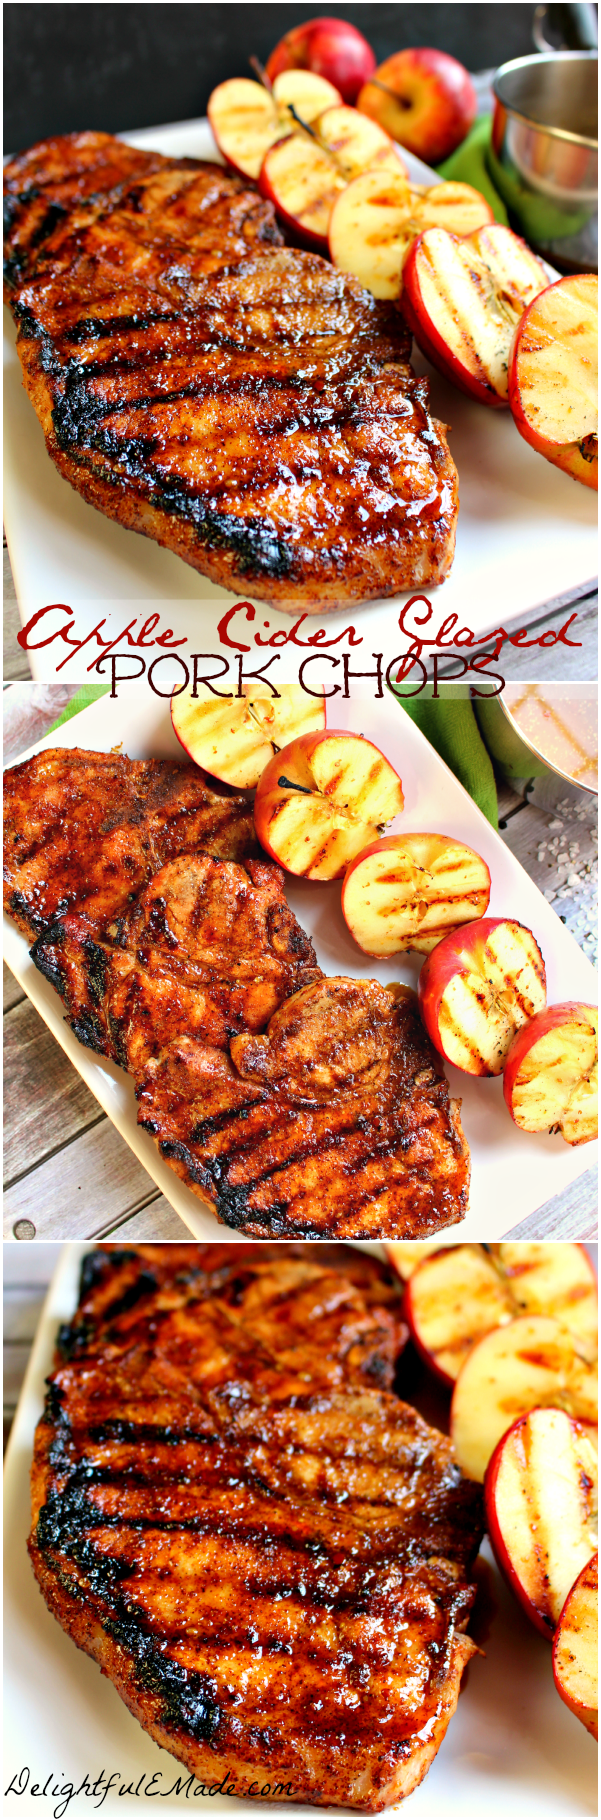 These Apple Cider Glazed Pork Chops are AMAZING! Perfectly seasoned ...